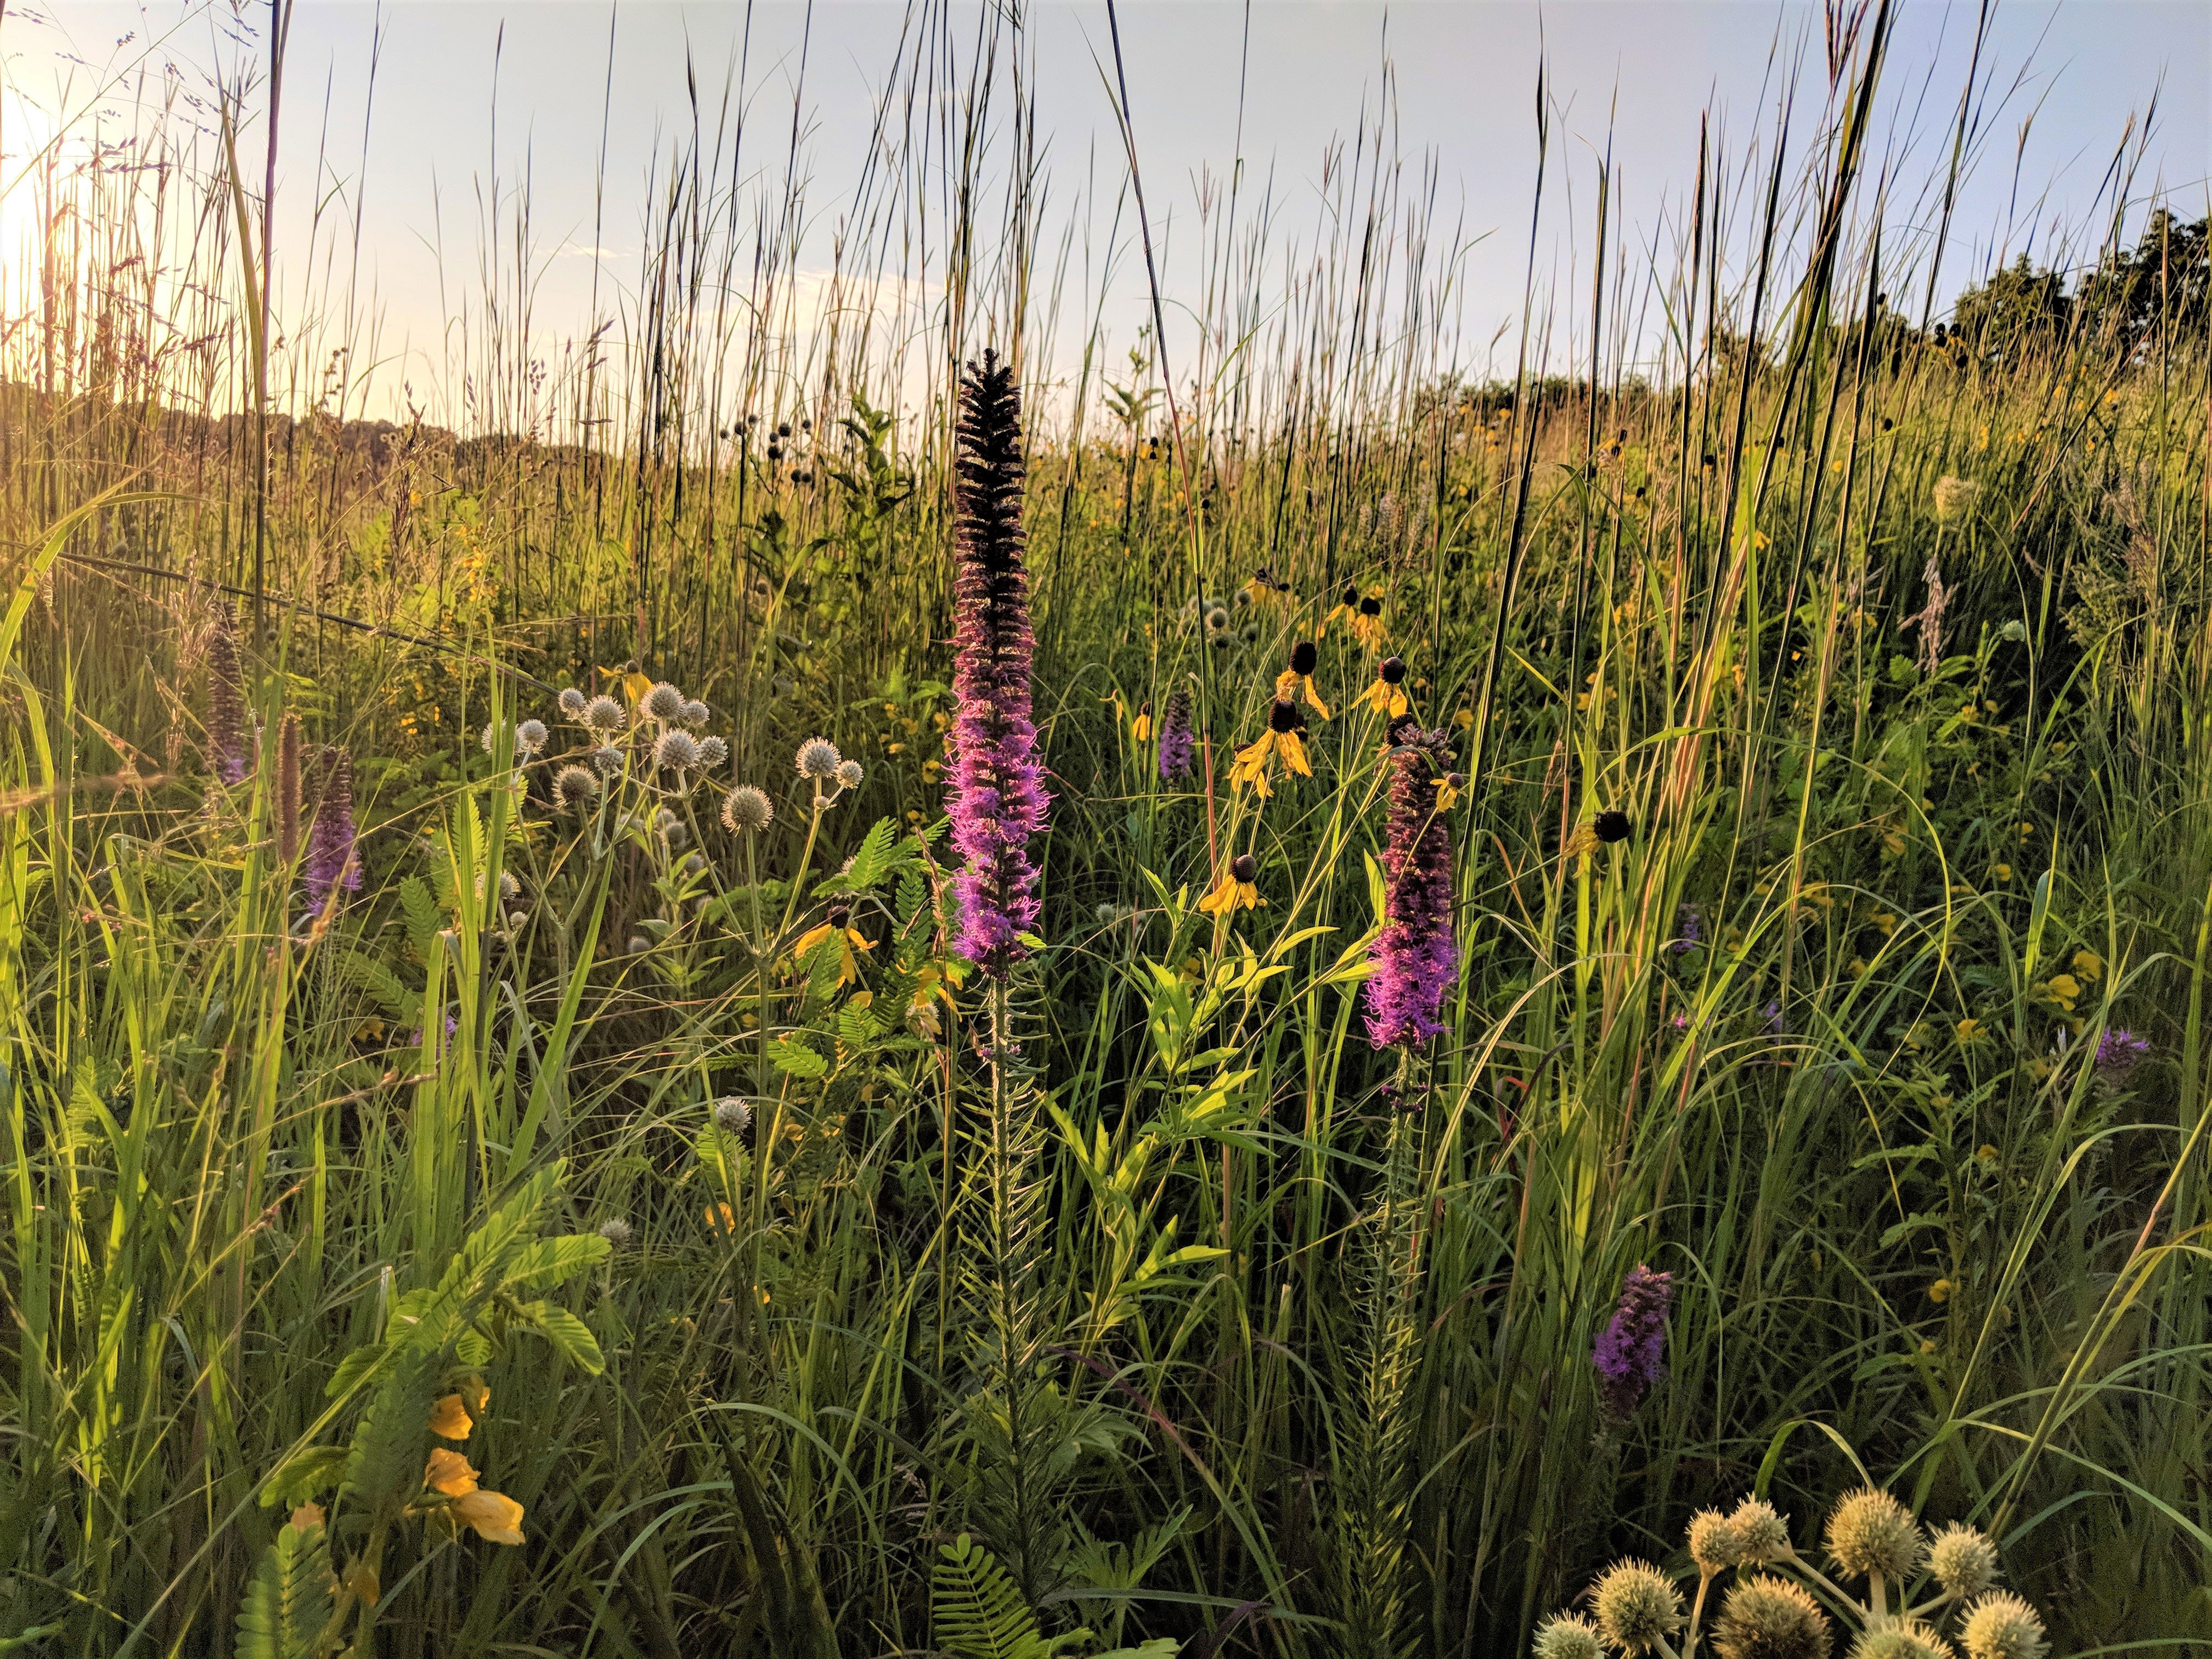 A beautifully backlit scene, in which the stems and blooms of the plants appear to glow in golden evening light, showcases a diversity of flowering plant species in a prairie landscape.